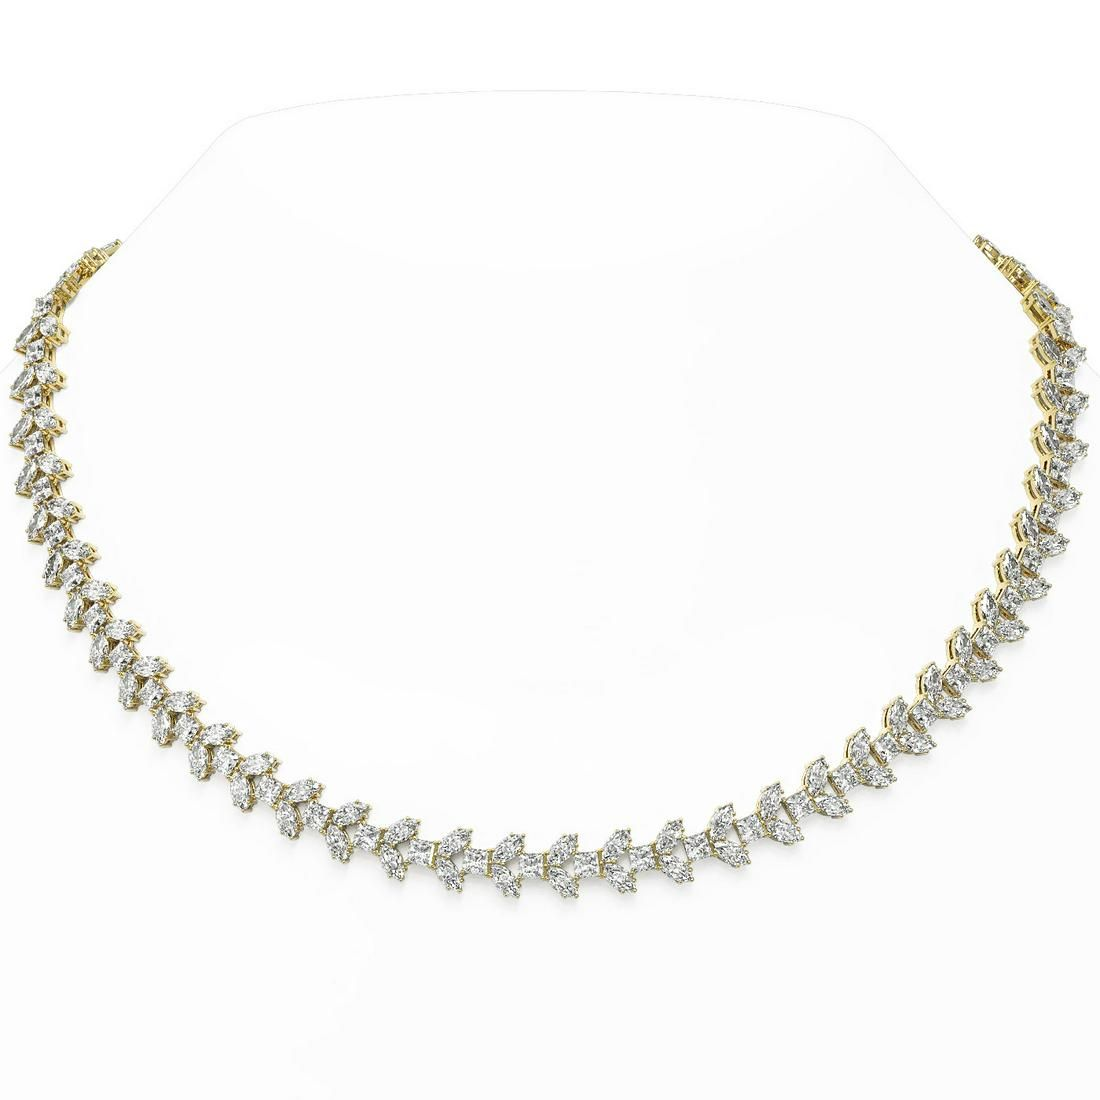 37 ctw Princess & Marquise cut Diamond Necklace 18K